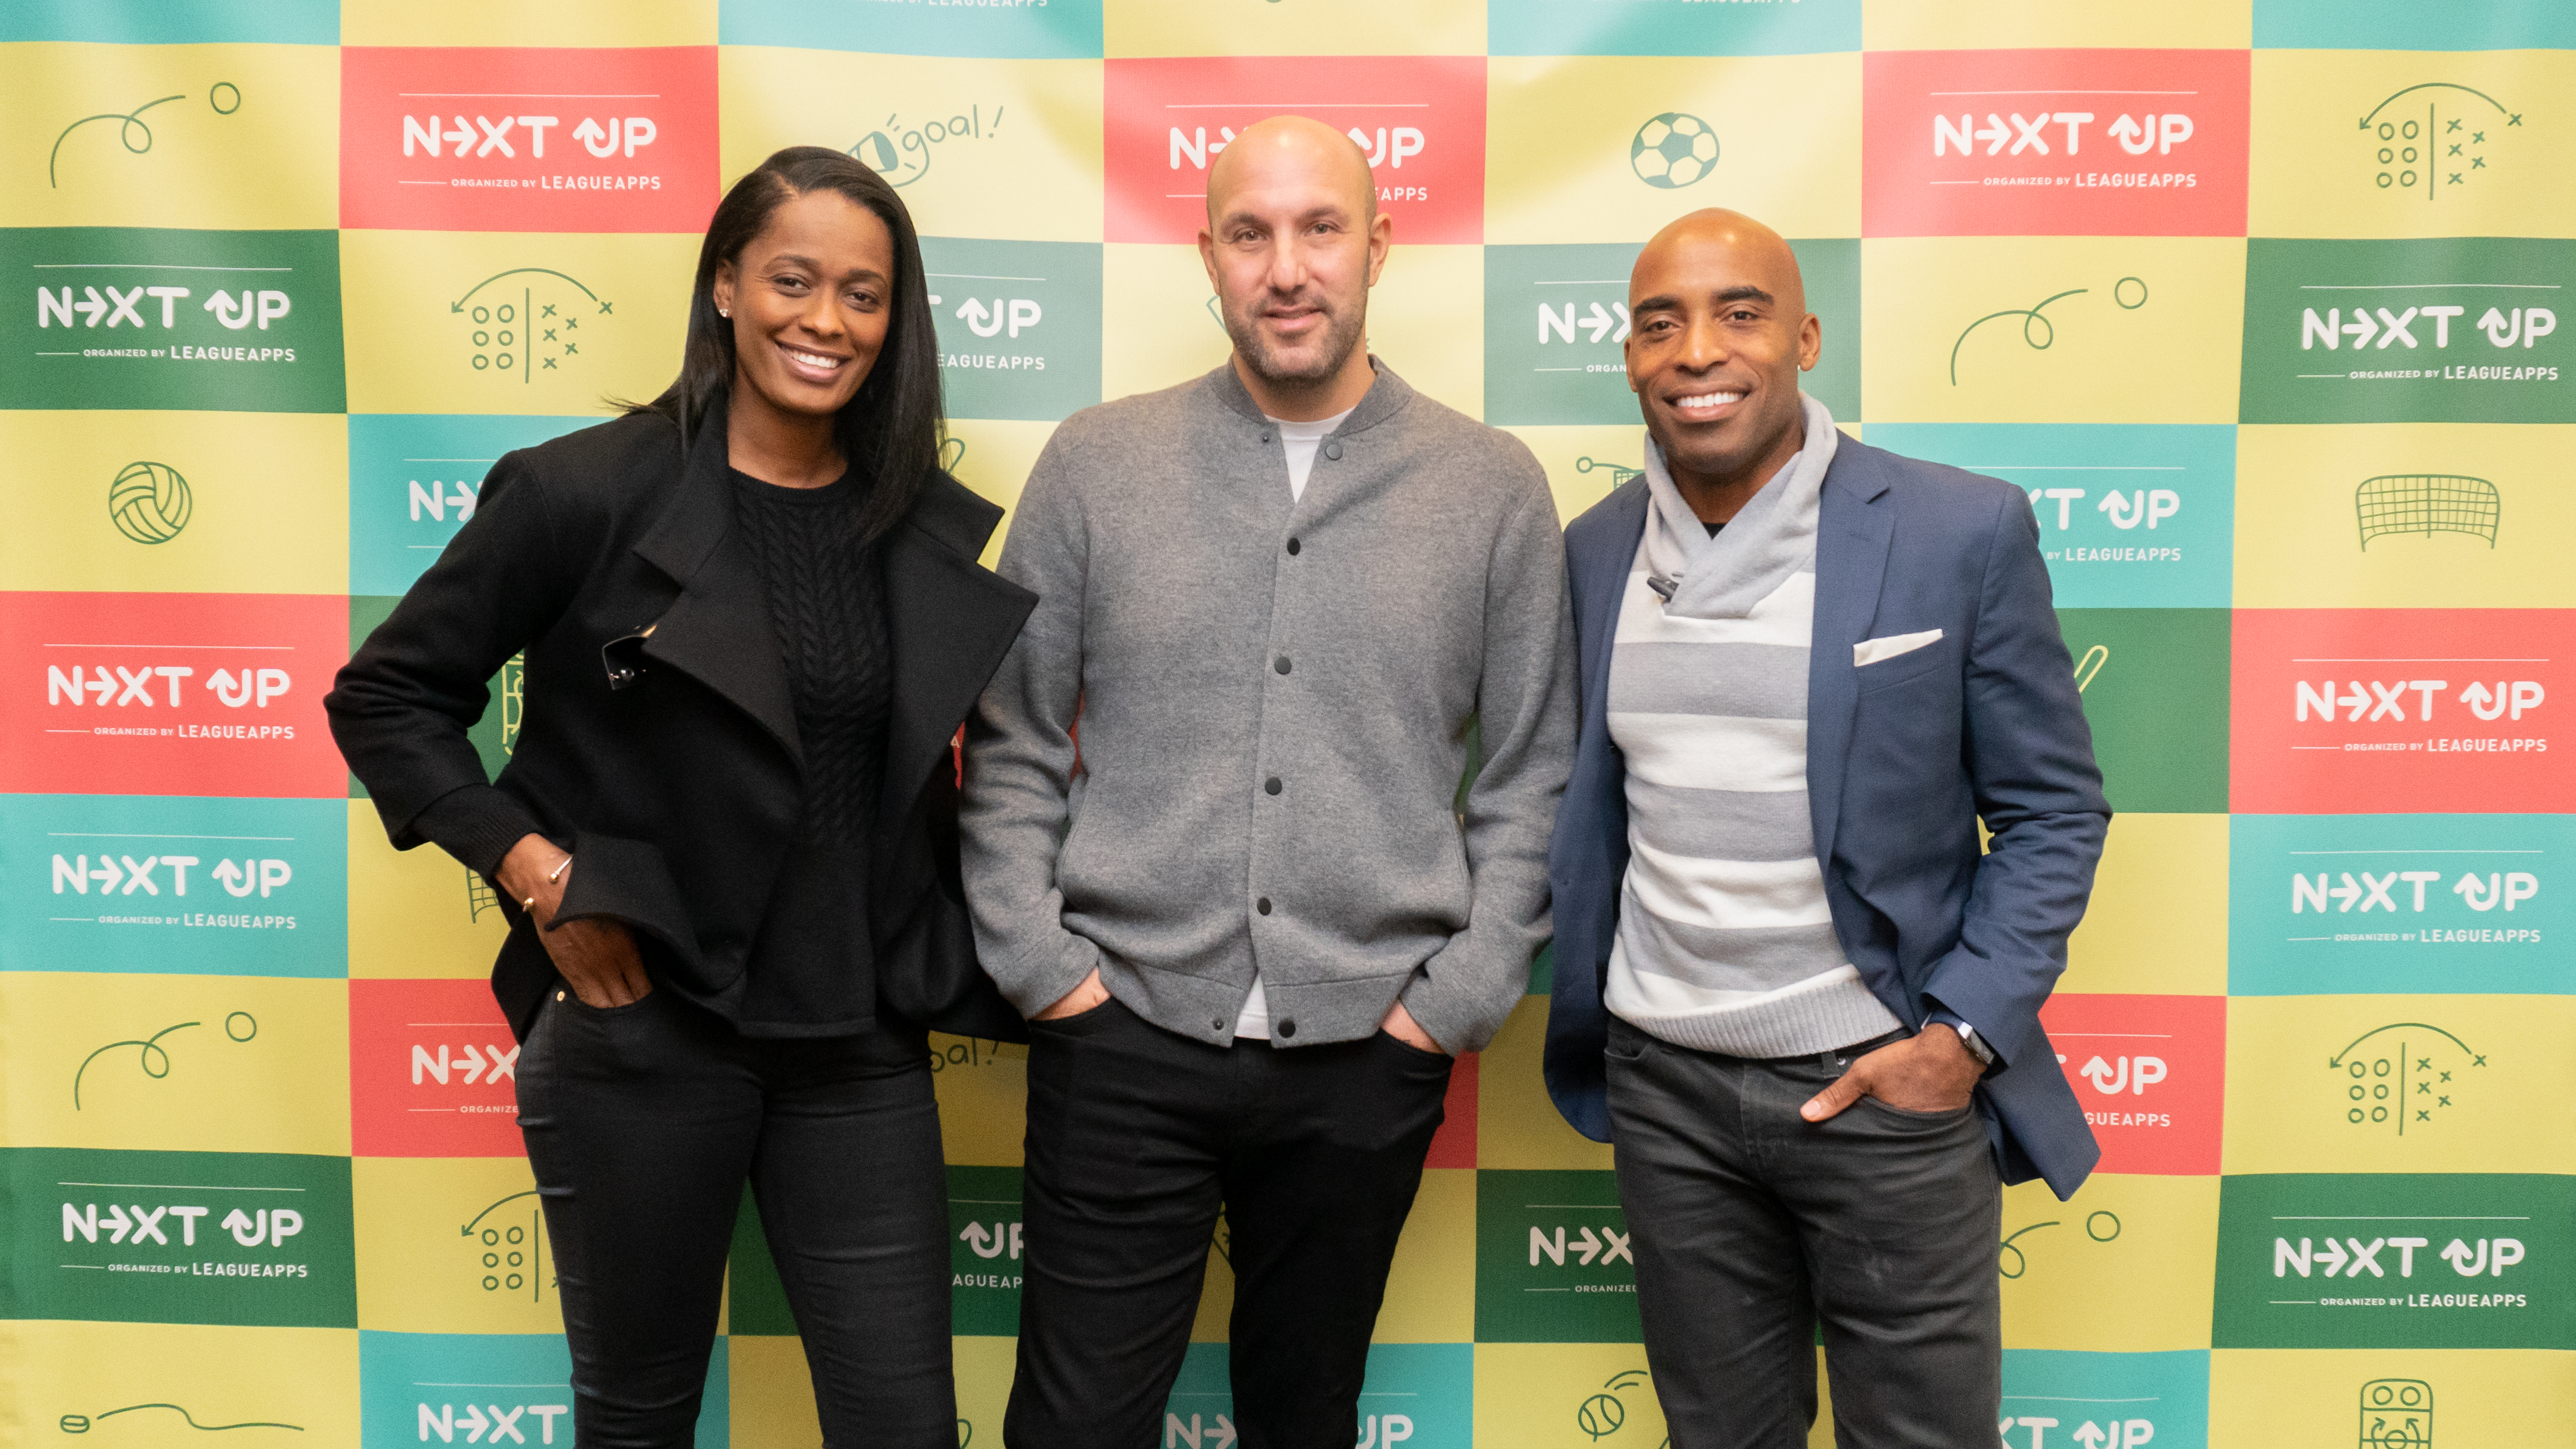 Panelists: Swin Cash, Rich Kleiman, and Tiki Barber